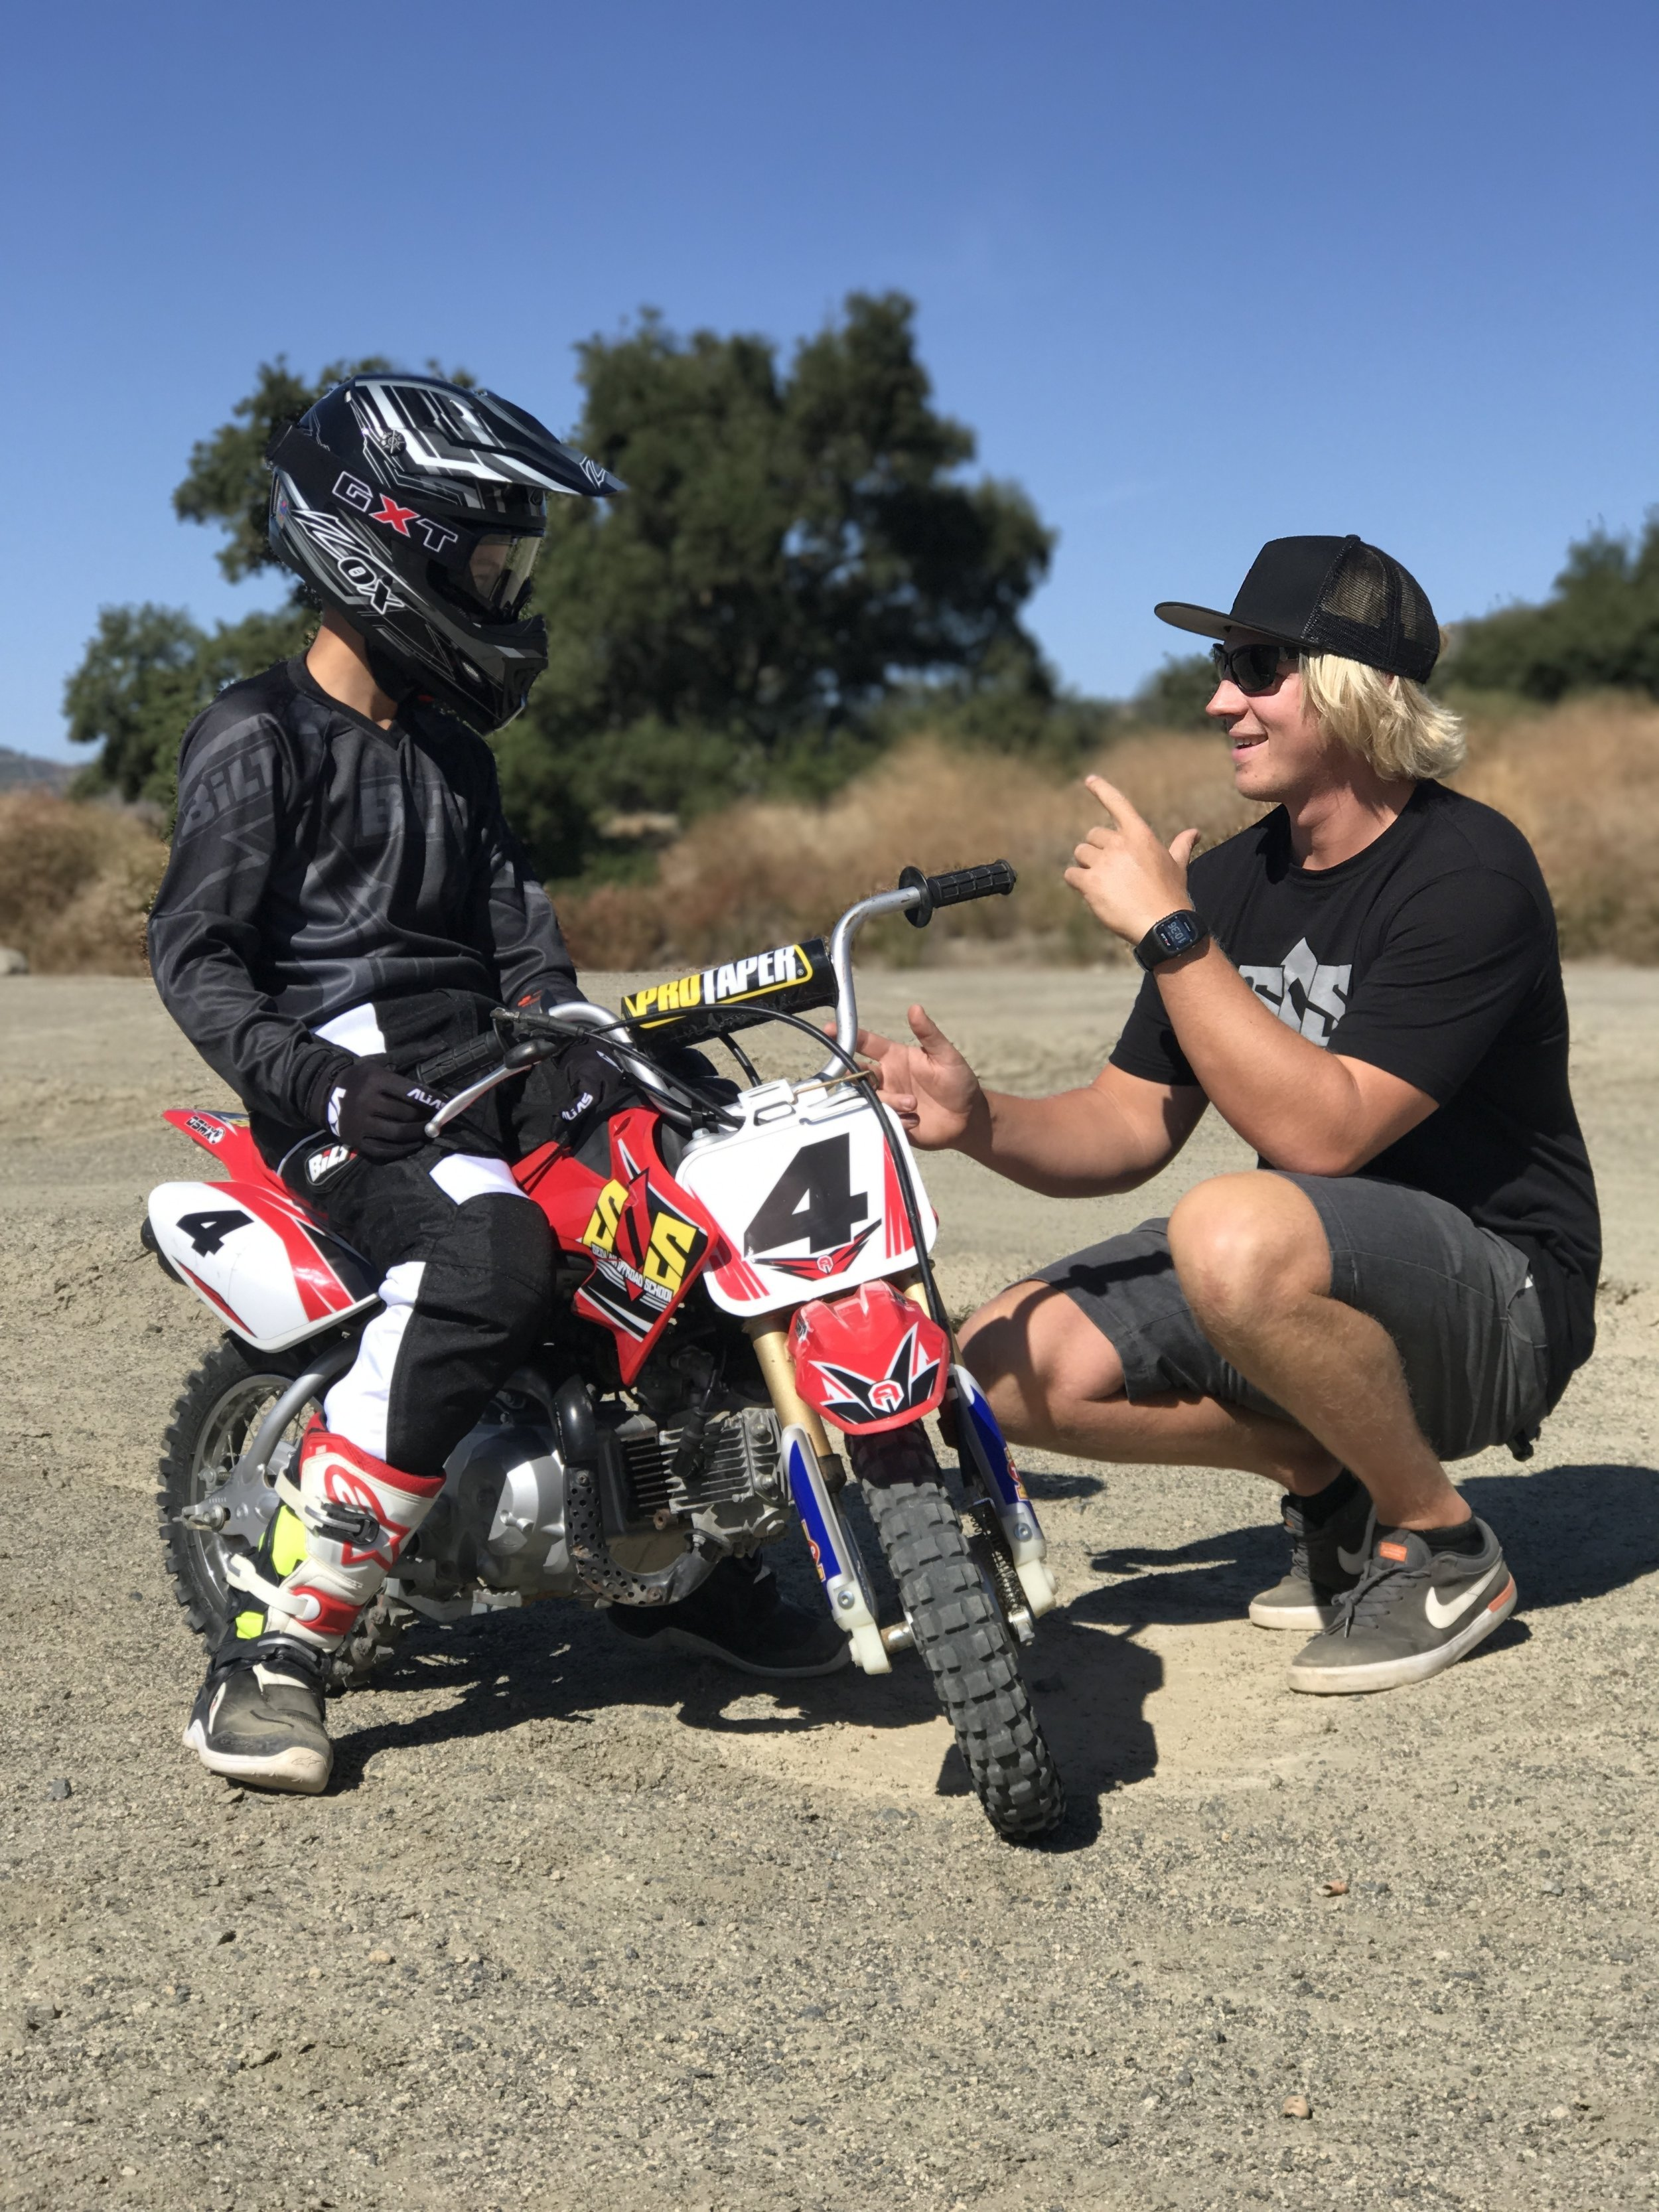 Professional instructors will assist you throughout your entire ride